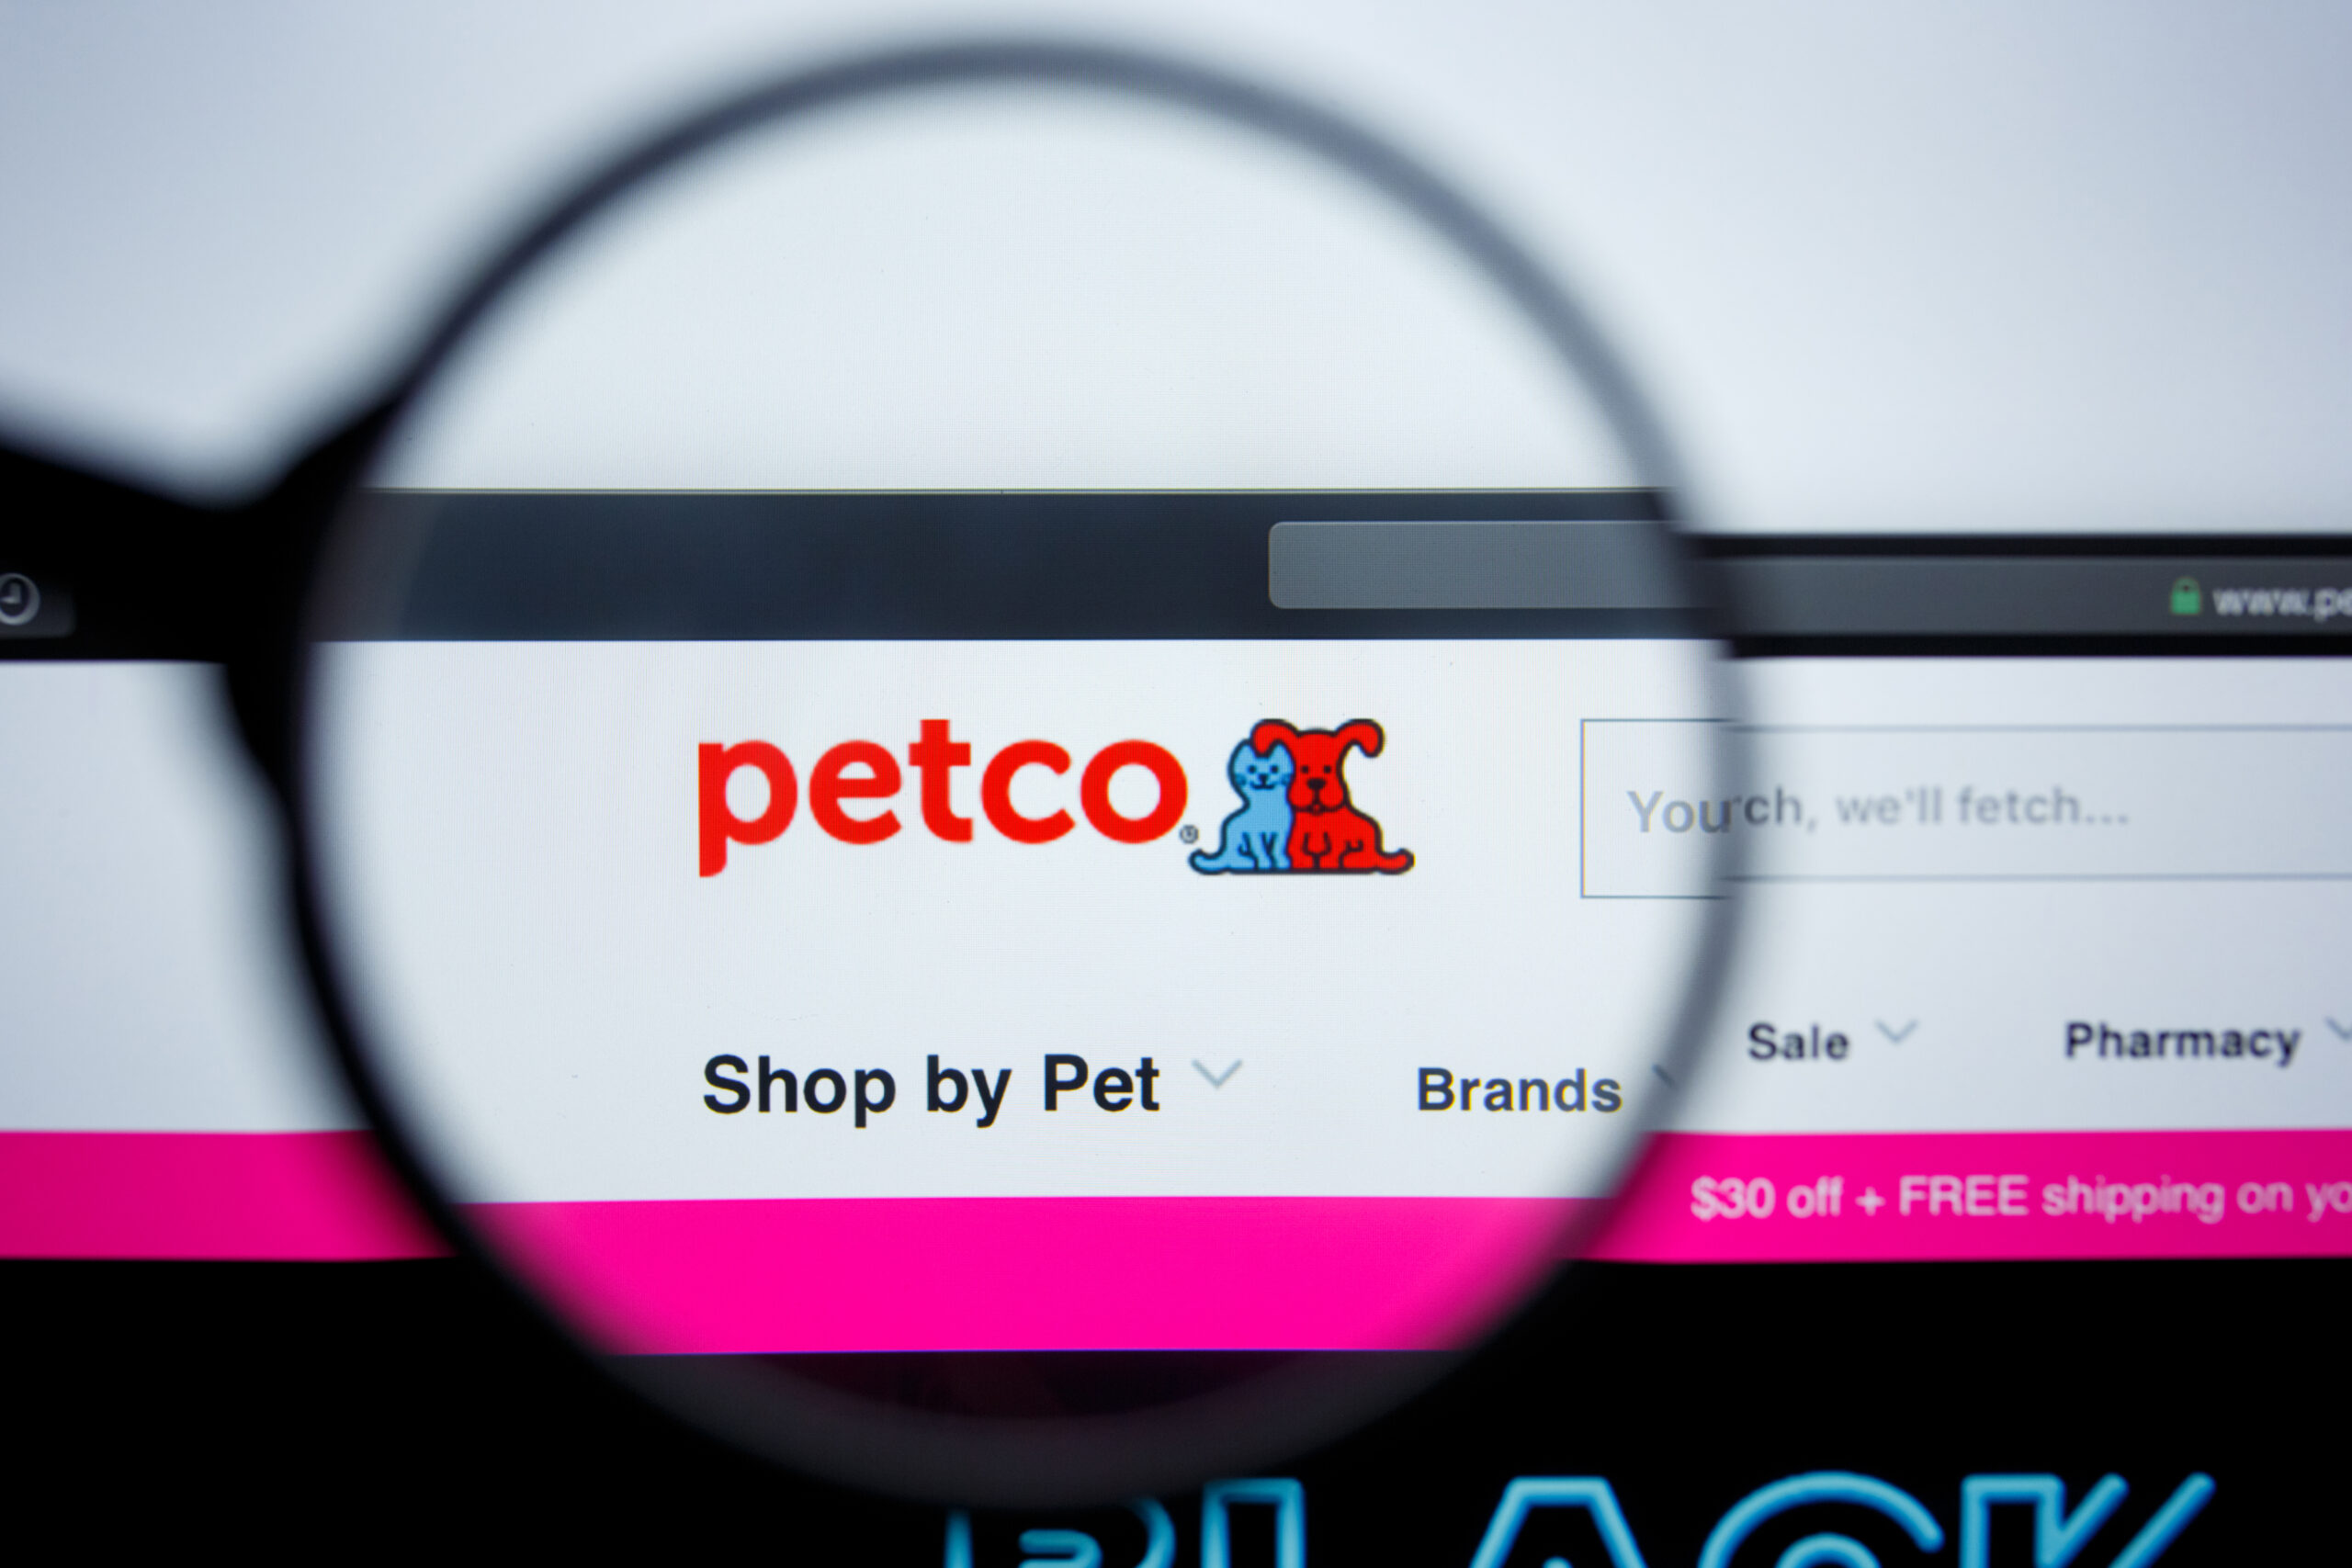 Pet Supplies from Petco